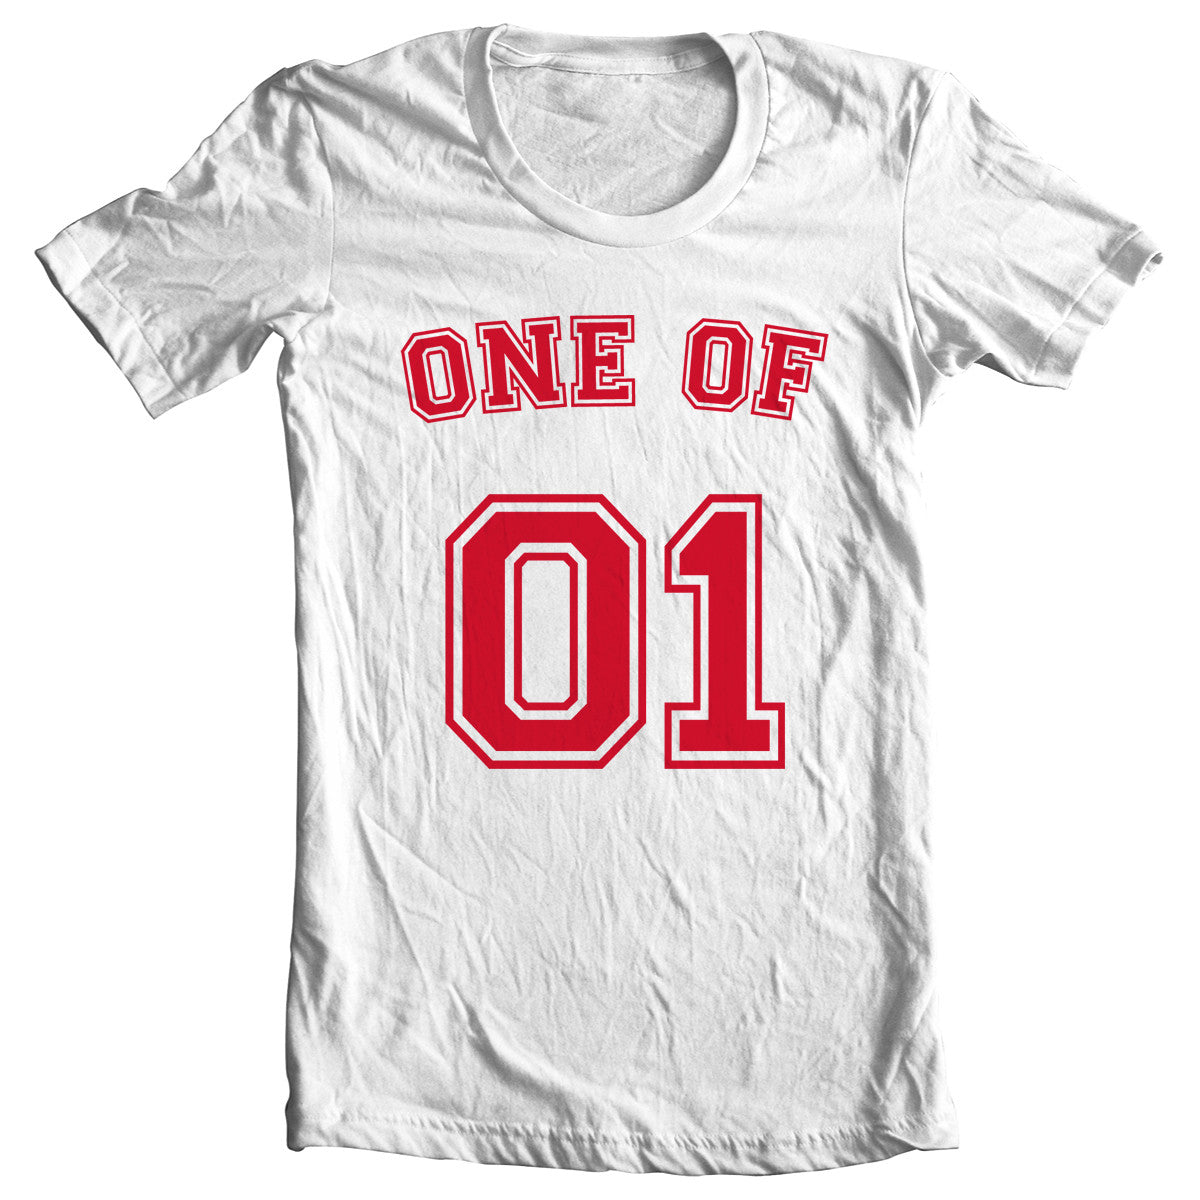 One Of One jersey style t-shirt